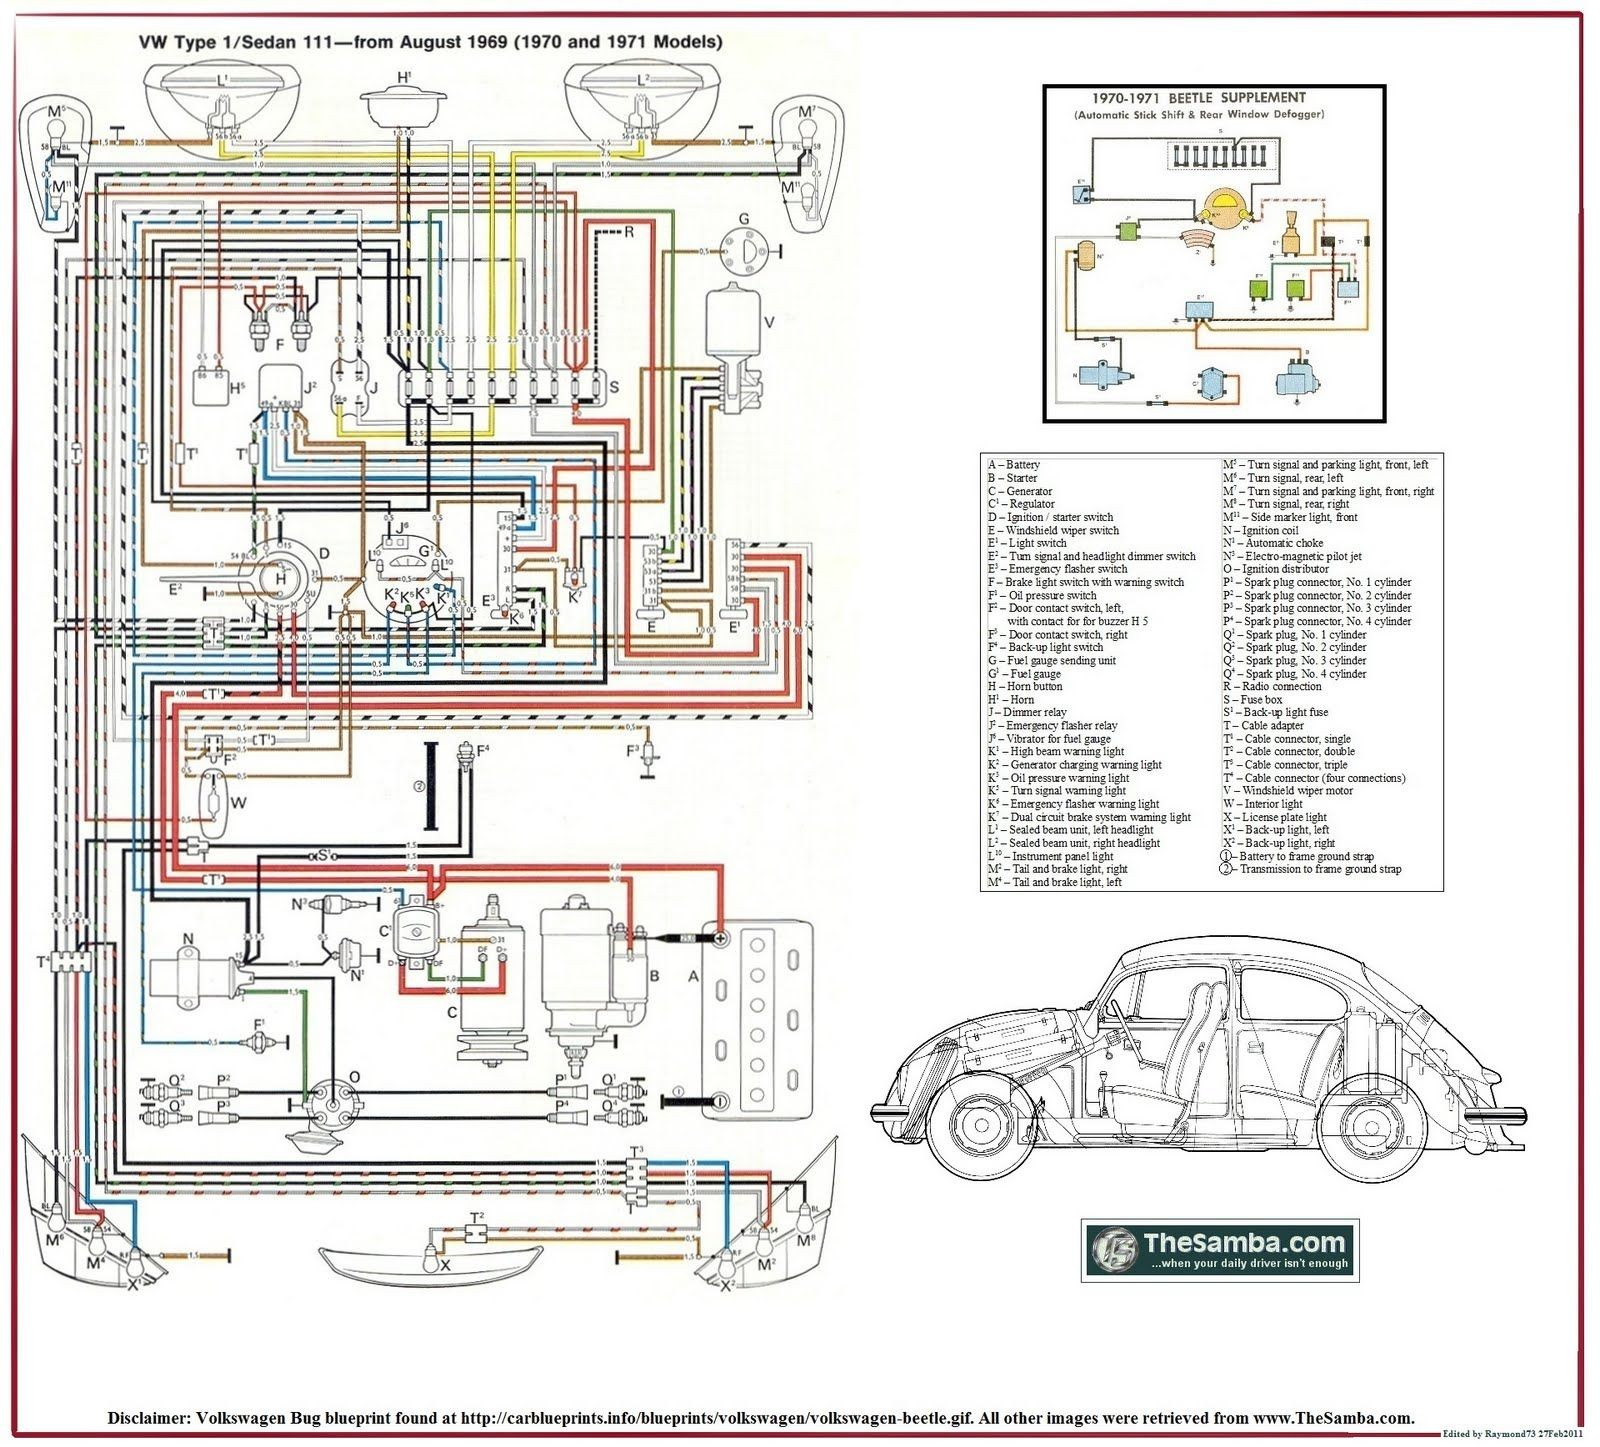 Vw Engine Diagram Vw Beetle Wiring Ch A Simple Car Bugs Pinterest Of Vw  Engine Diagram